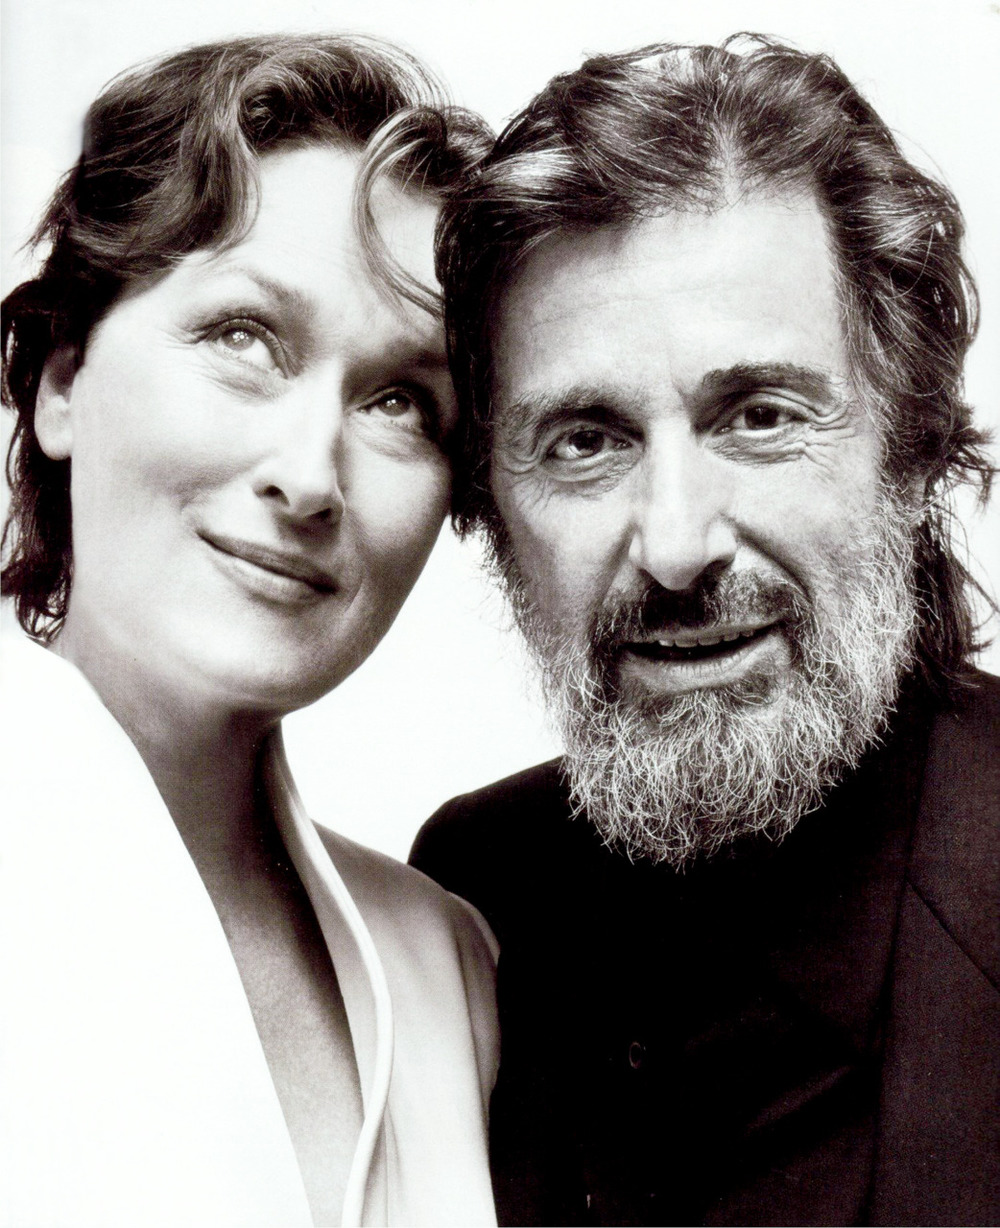 Streep and Pacino from Angels in America circa 2003